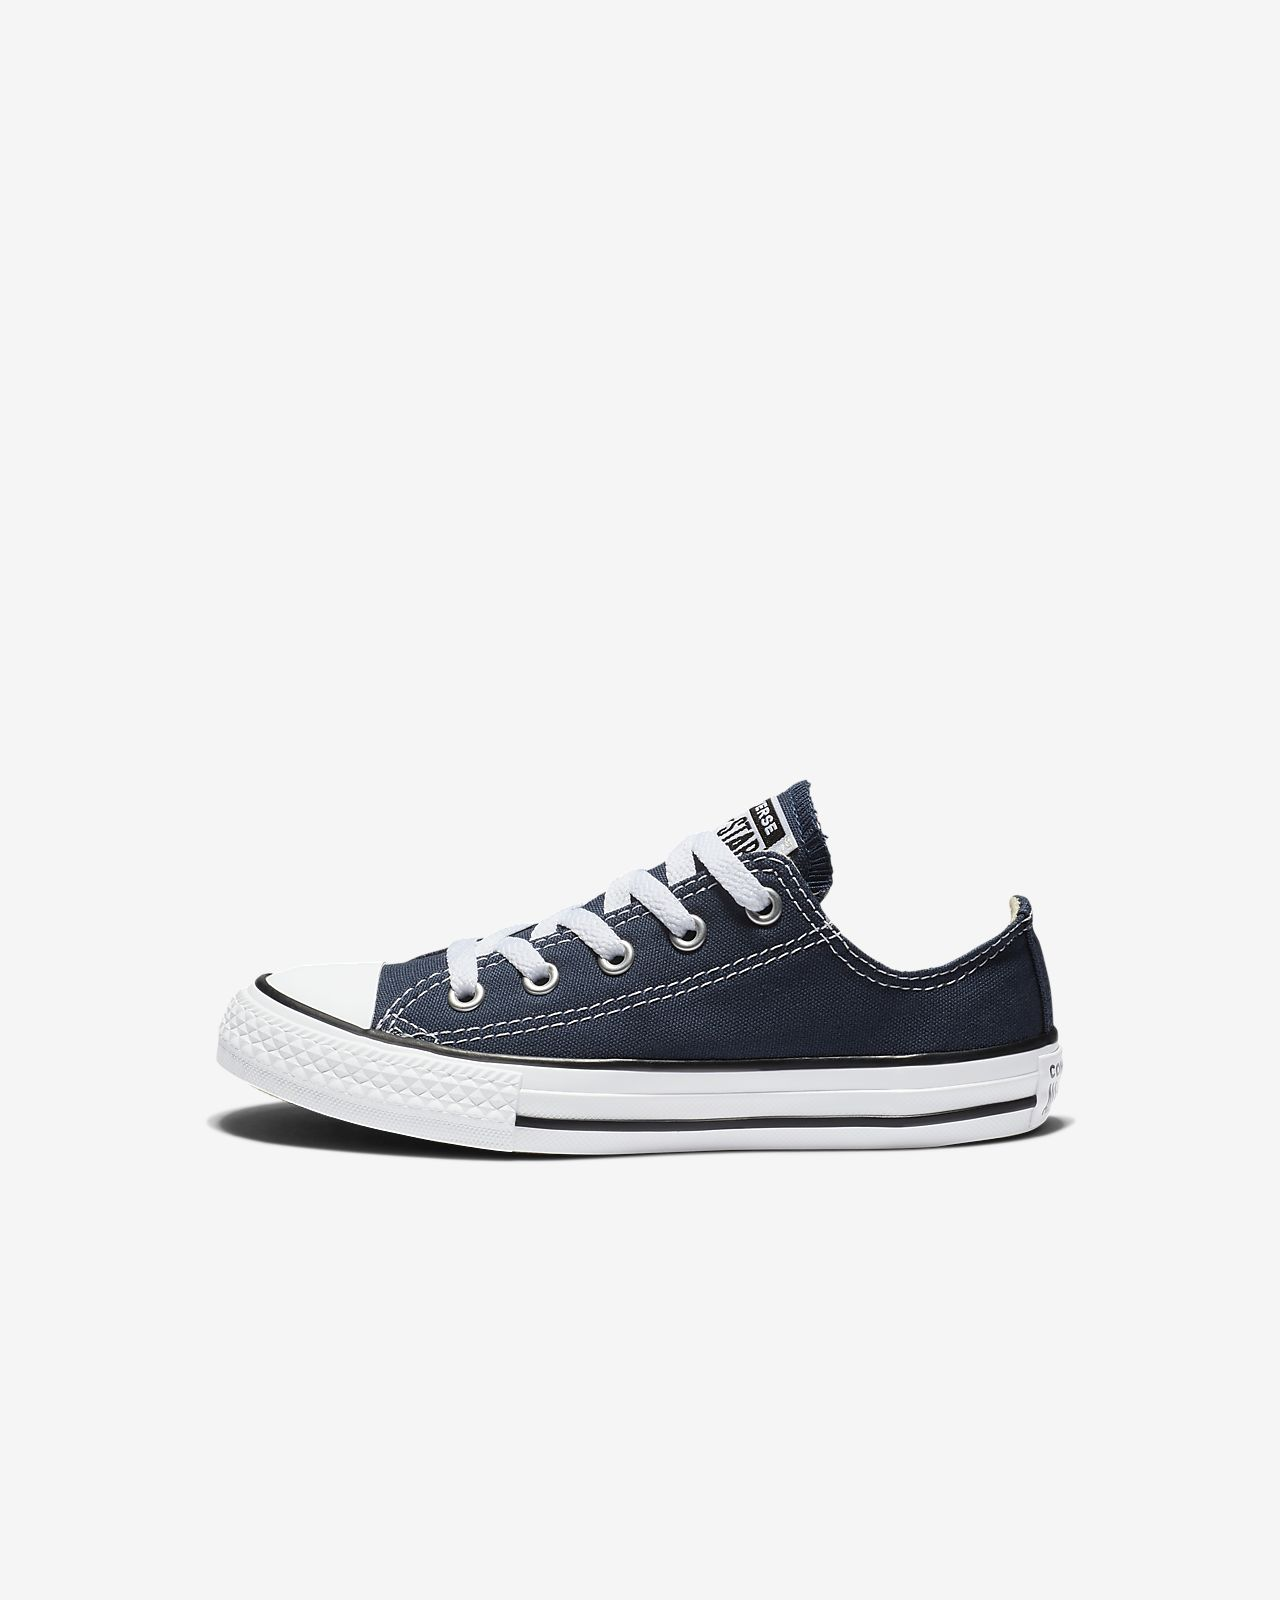 84d37089af8b Converse Chuck Taylor All Star Low Top (10.5c-3y) Little Kids  Shoe ...